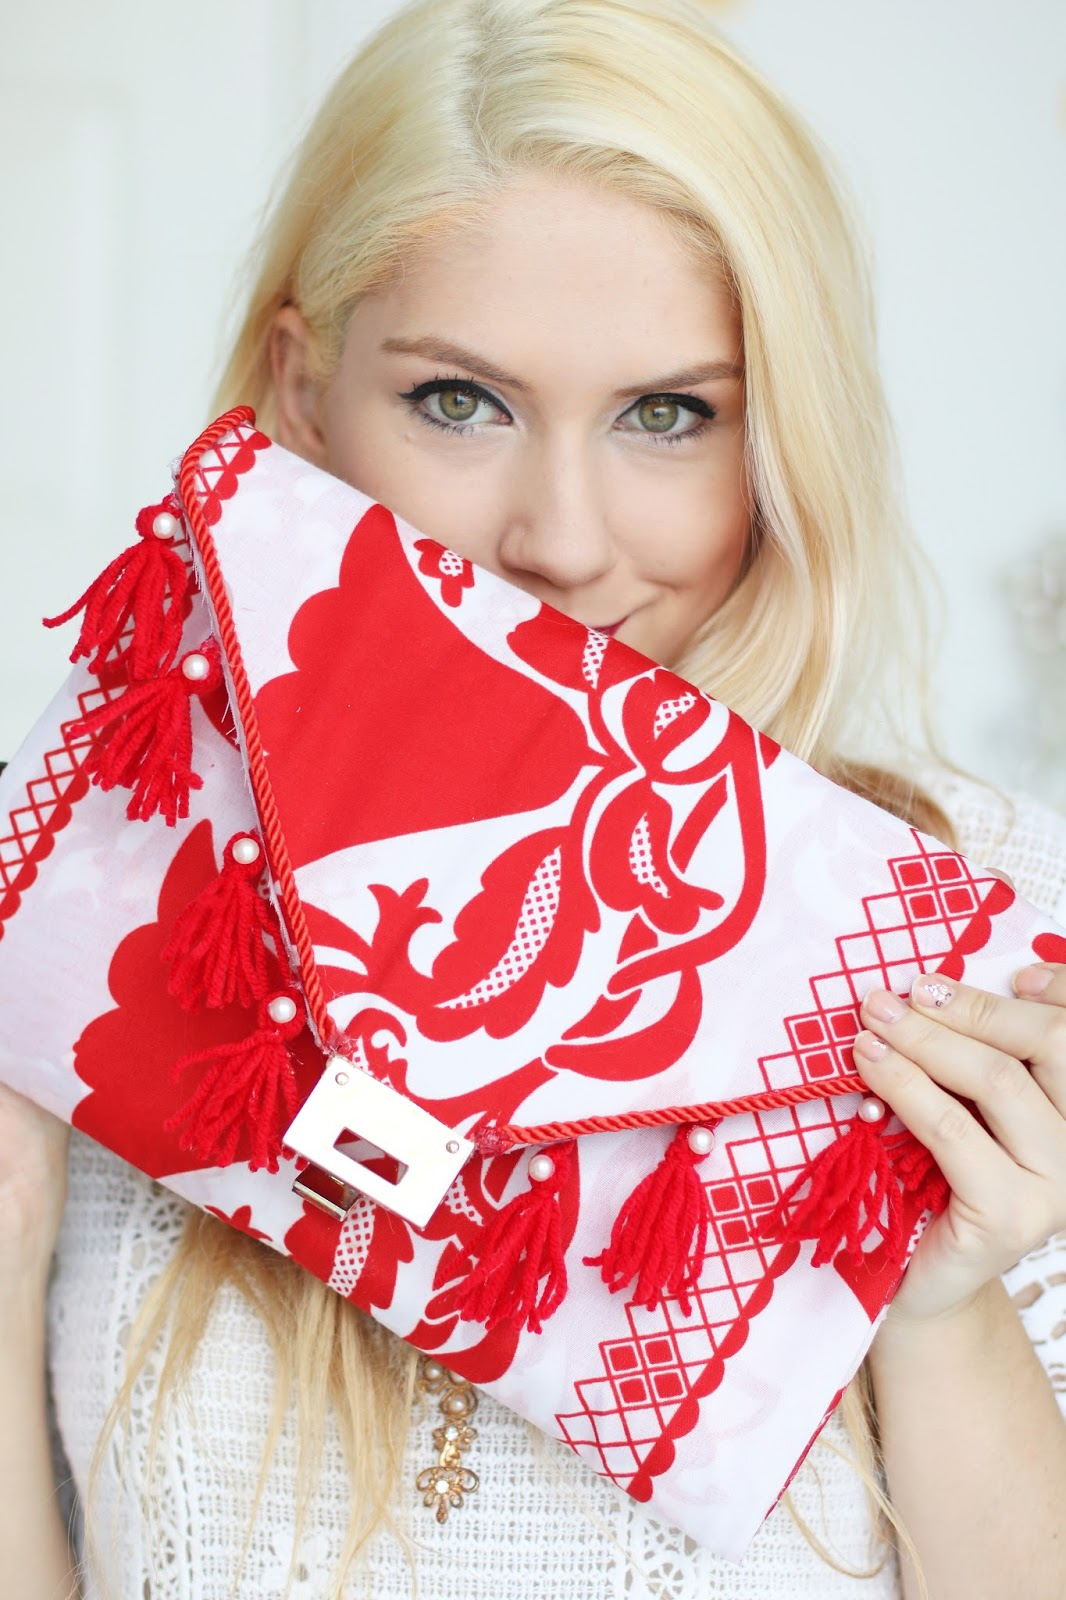 DIY No-Sew Panama pollera inspired clutch. Click through for tutorial